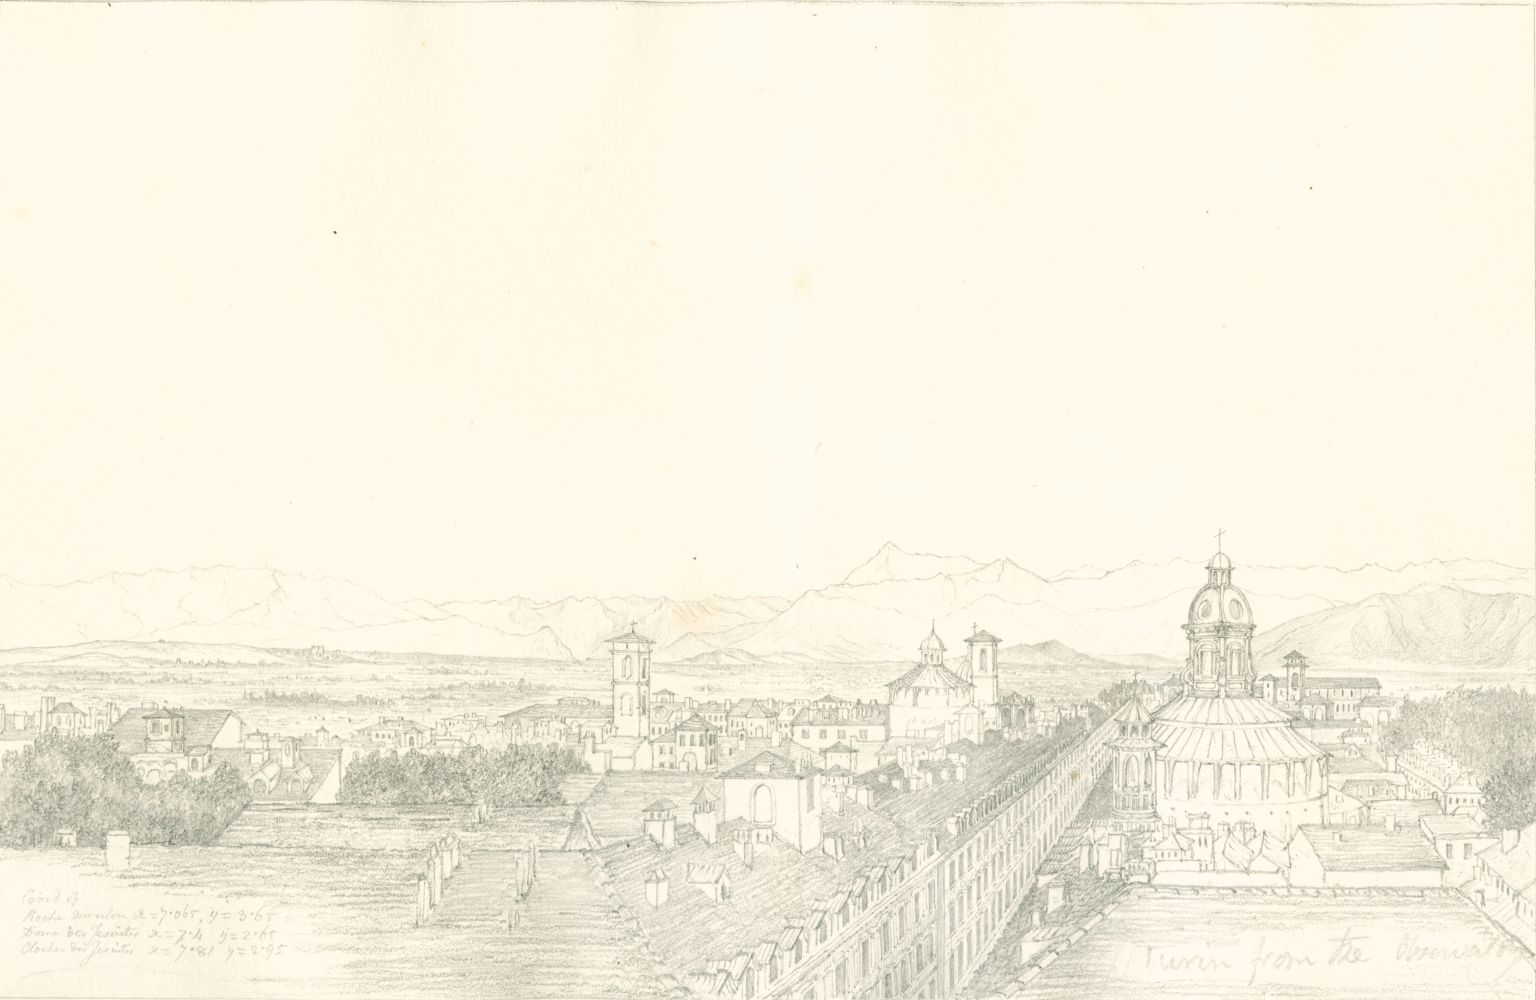 """Sir John Frederick William HERSCHEL (English, 1792-1872) """"No 351 Turin with the chain of the Alps. From the roof of the Observatory"""", 1824 Camera lucida drawing, pencil on paper 20.2 x 31.0 cm on 25.2 x 38.6 cm paper Numbered, signed, dated and titled """"No 351 / JFW Herchel del. Cam. Luc. / 1824 / Turin with the chain of the Alps. From the roof of the Observatory."""" in ink in border, and """"Coord of / Roche Moulon x = 7.065, y = 3.65 / Dome des Jesuites x = 7.4, y = 2.65 / Clocher des Jesuites x = 7.81, y = 2.95 / Turin from the Observatory"""" in pencil. Inscribed """"Turin from Observatory"""" in pencil on verso"""